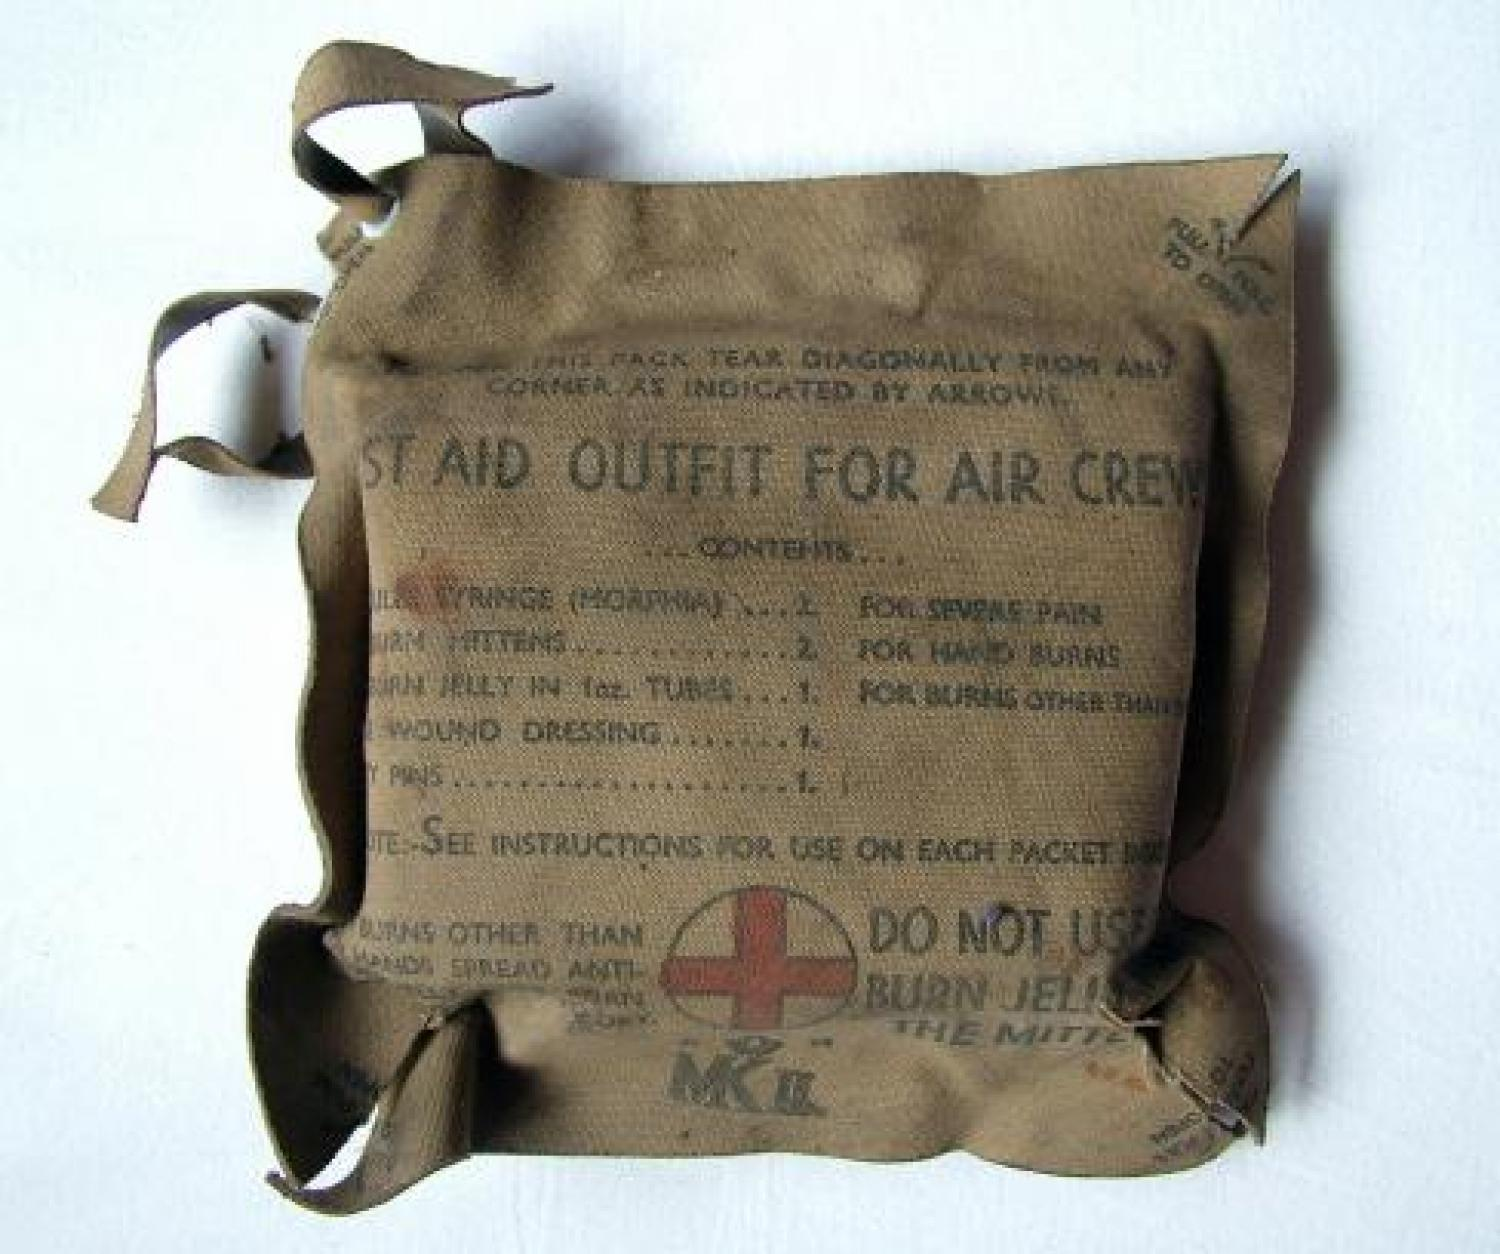 First Aid Outfit For Aircrews, MK.II